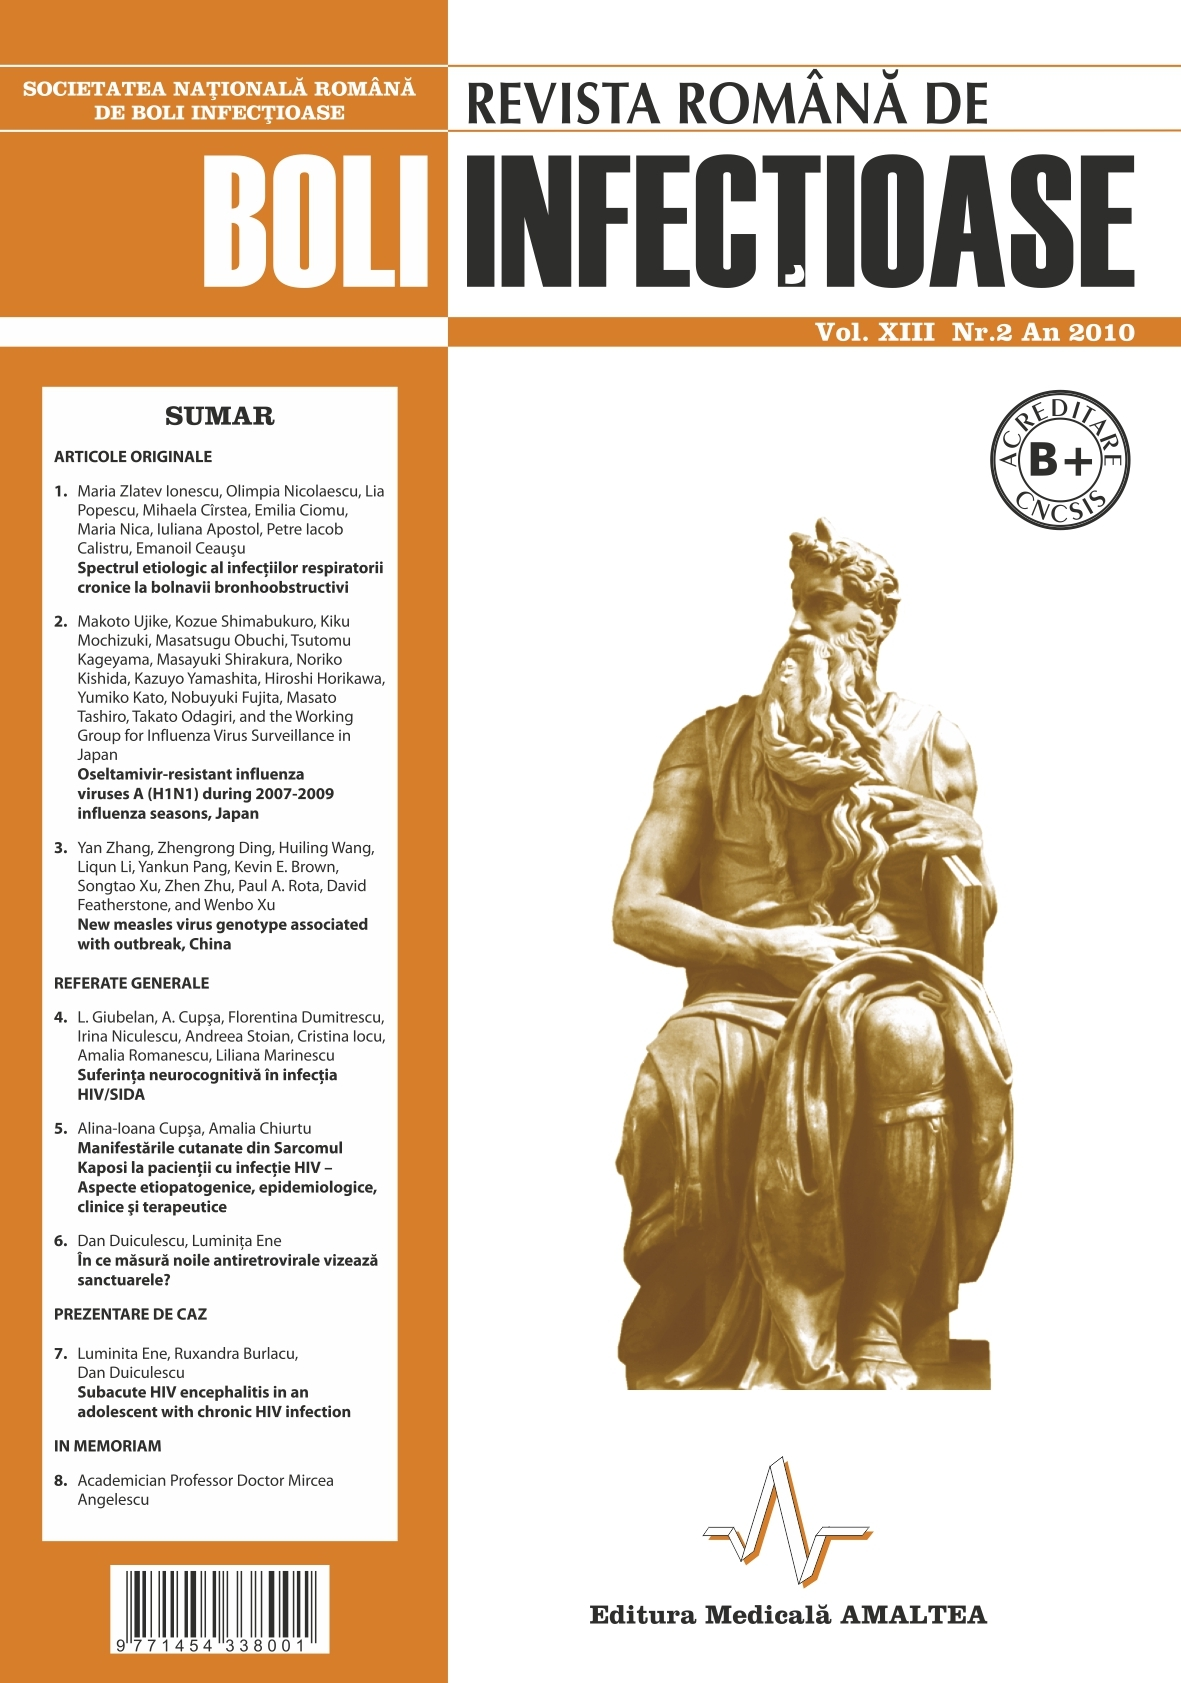 Revista Romana de Boli Infectioase | Vol. XIII, No. 2, 2010